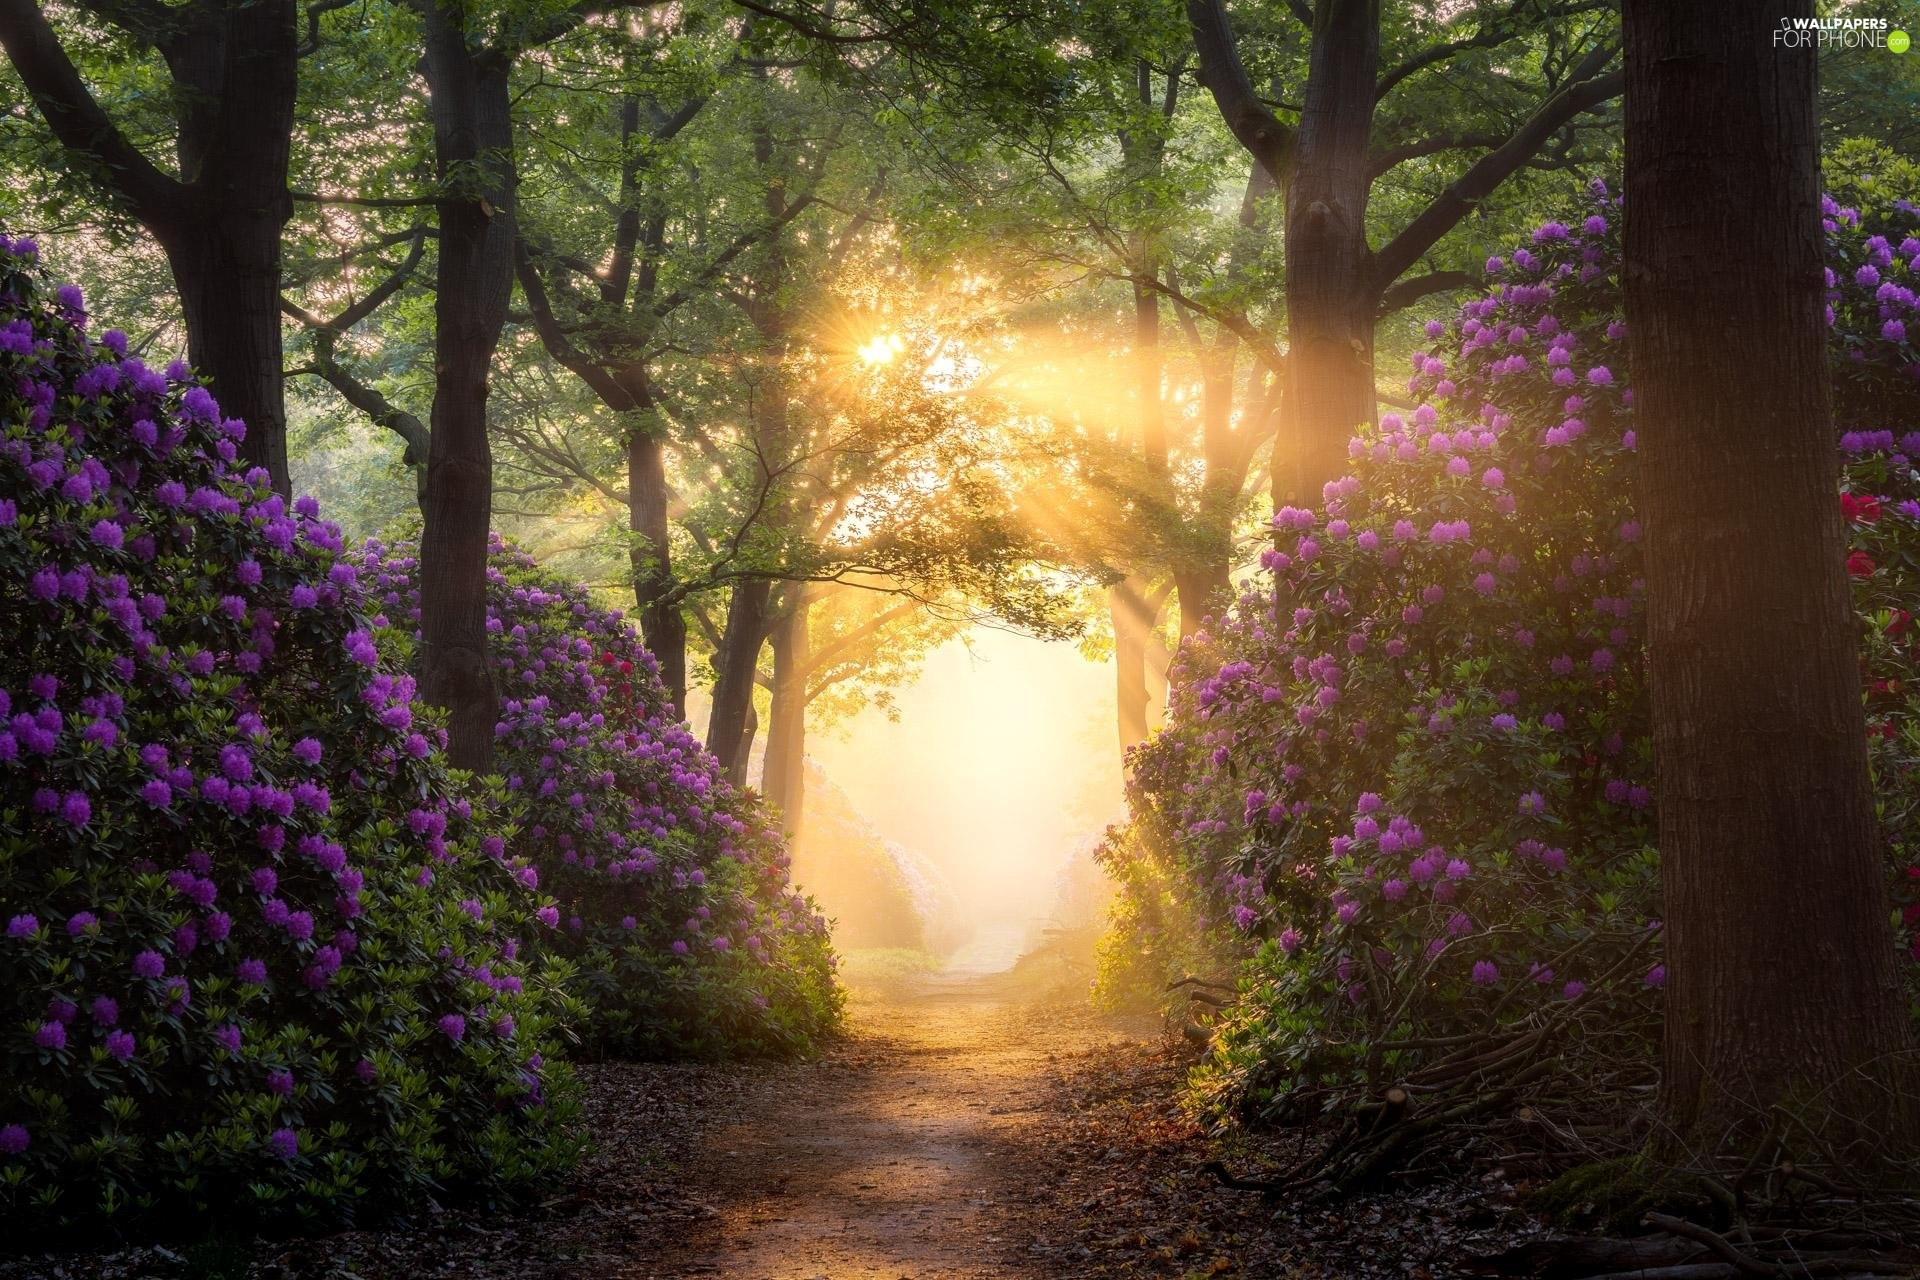 viewes, forest, Path, Rhododendron, light breaking through sky, trees